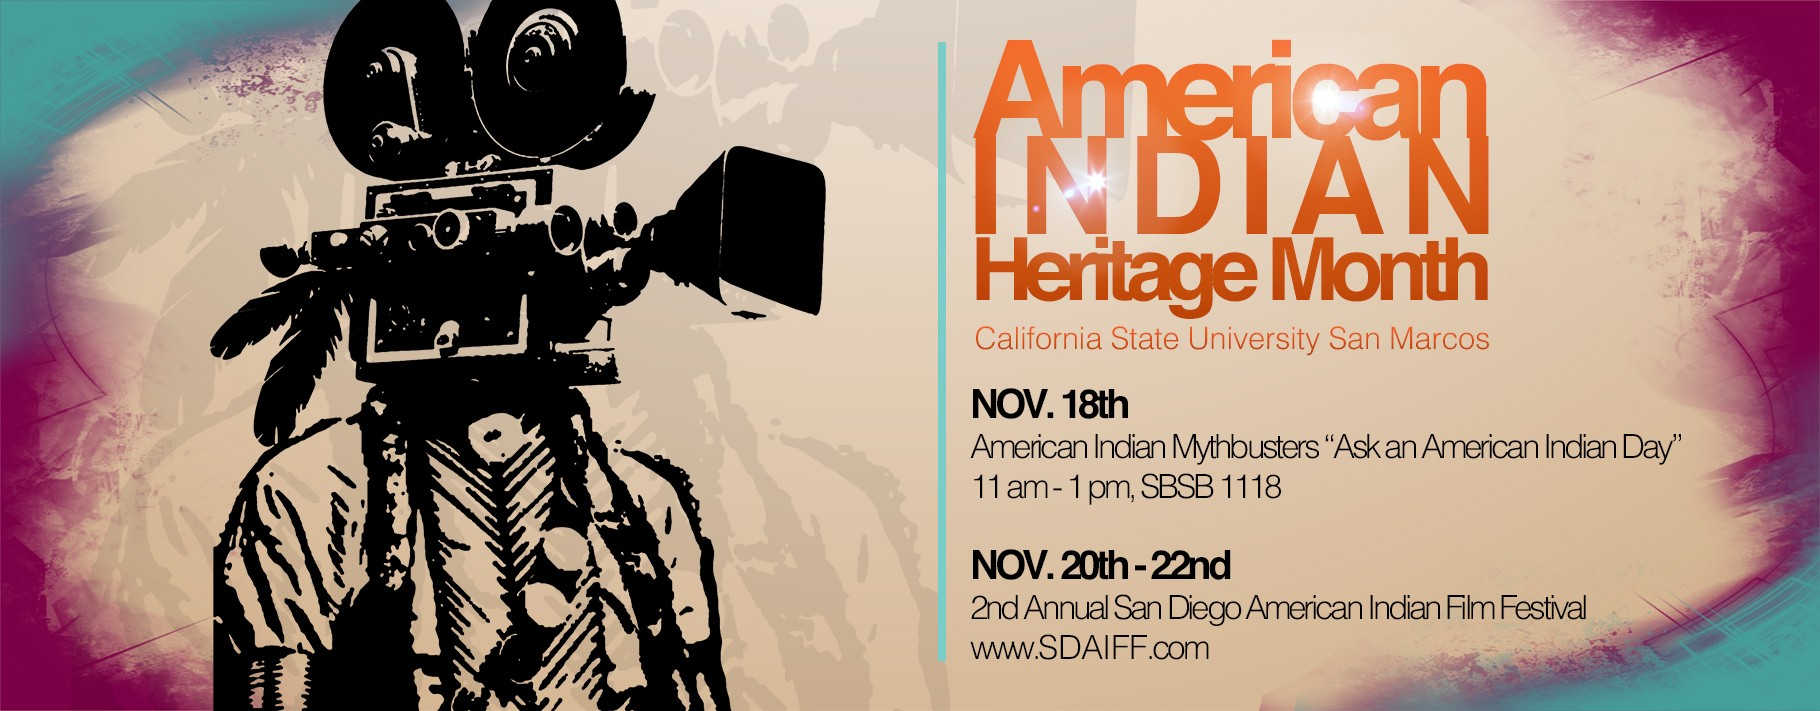 CSUSM American Indian Heritage Month